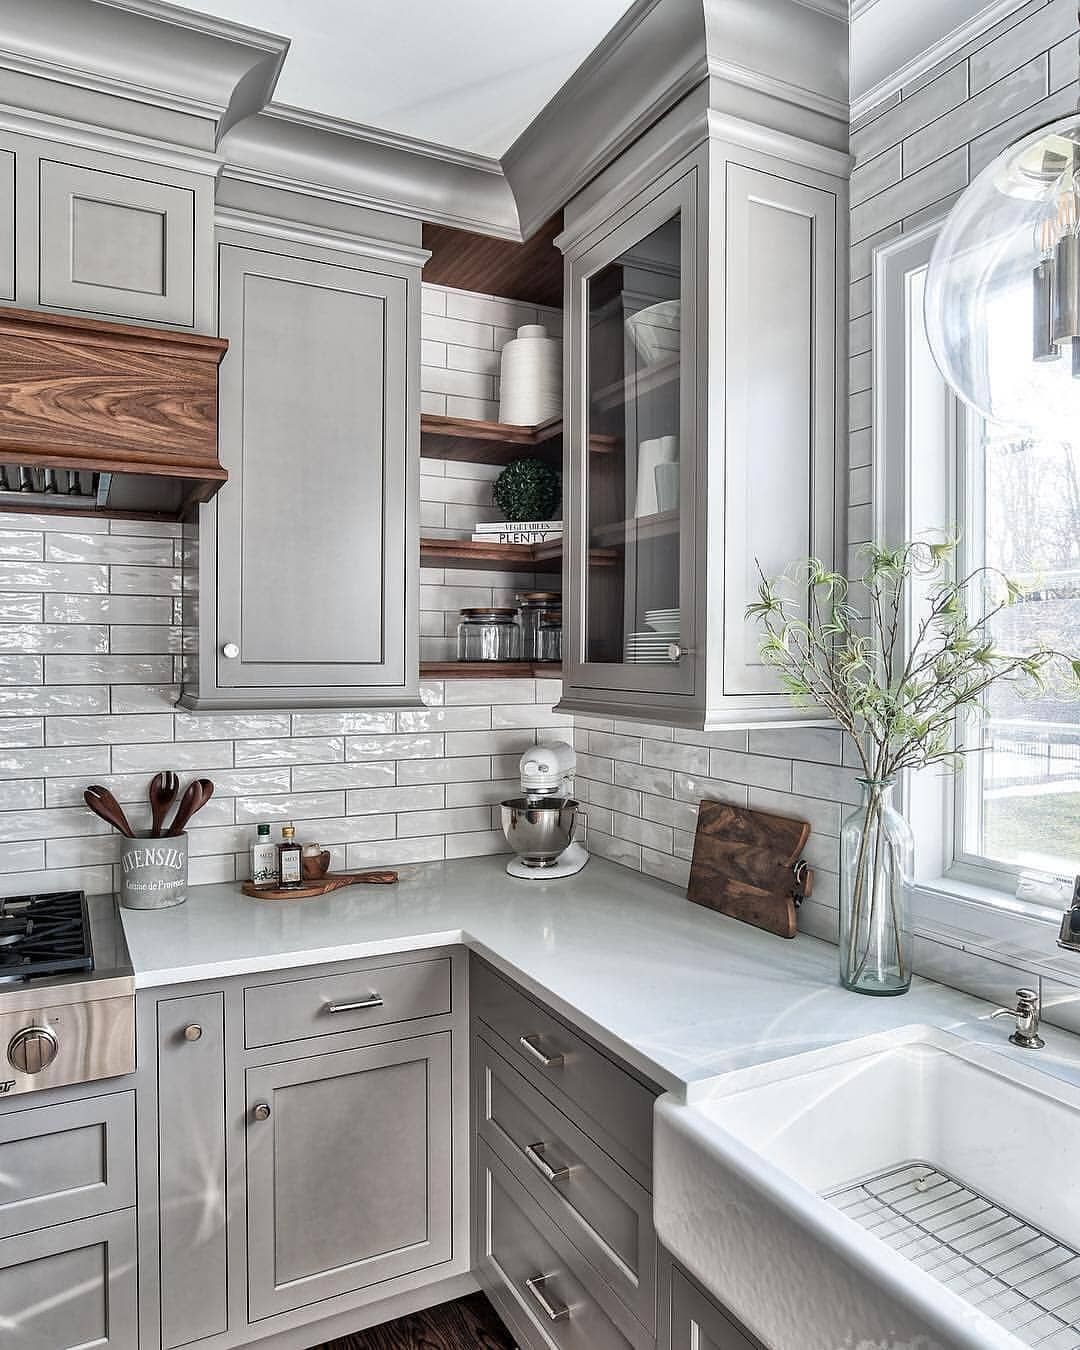 We Love These Grey Cabinets What Do You Think We Think The Dark Wood Accents Are A Beautiful Tou Kitchen Cabinet Design Grey Kitchen Designs Home Kitchens